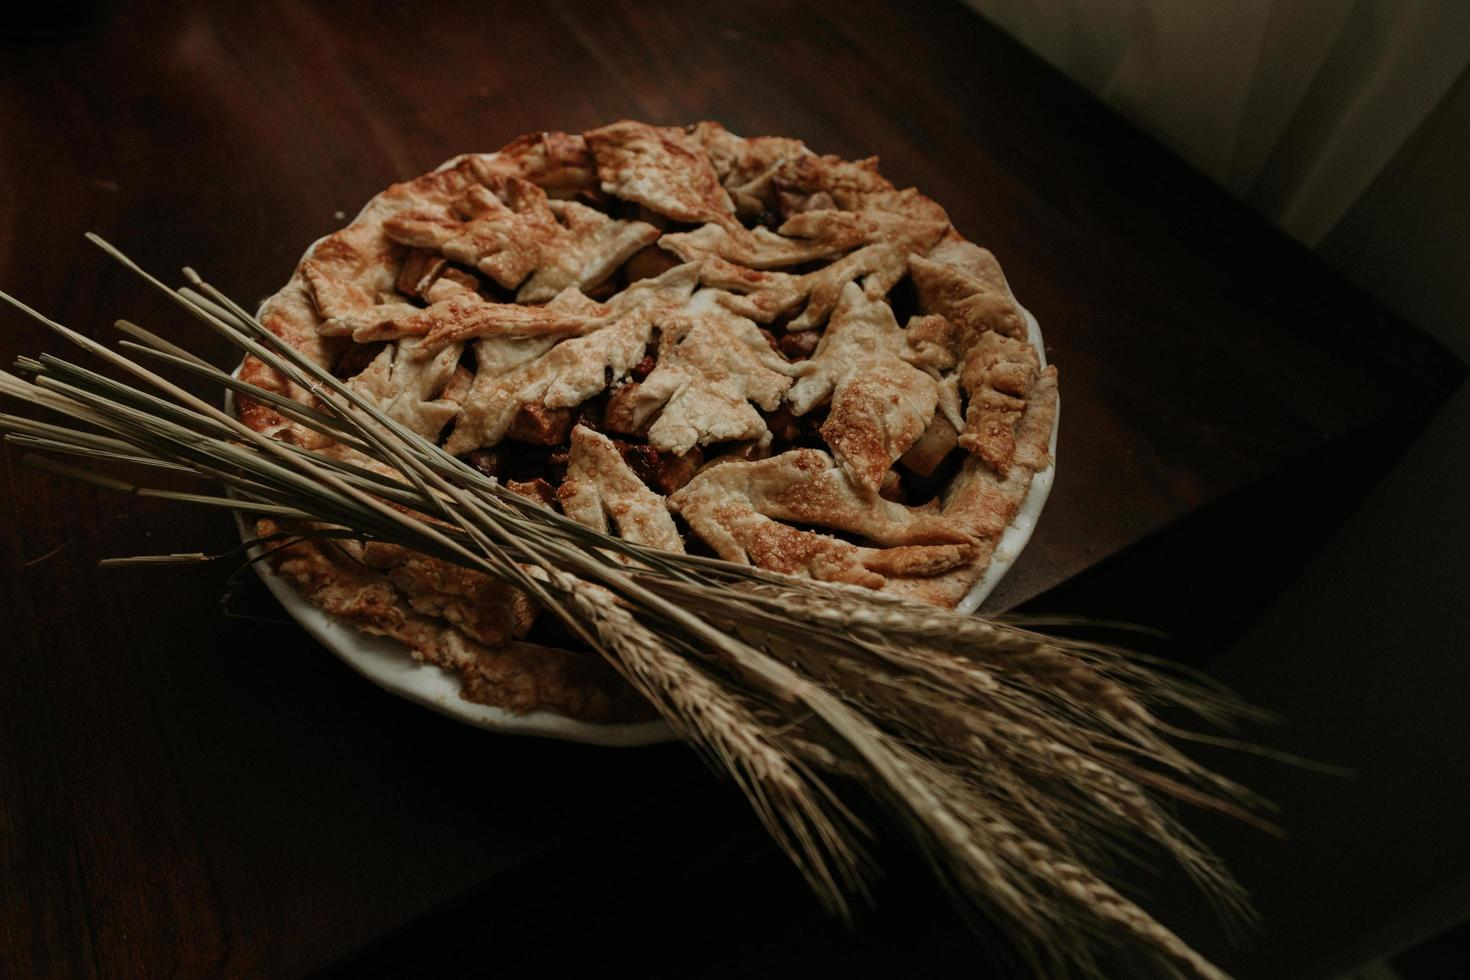 Baked pie on wooden table photo